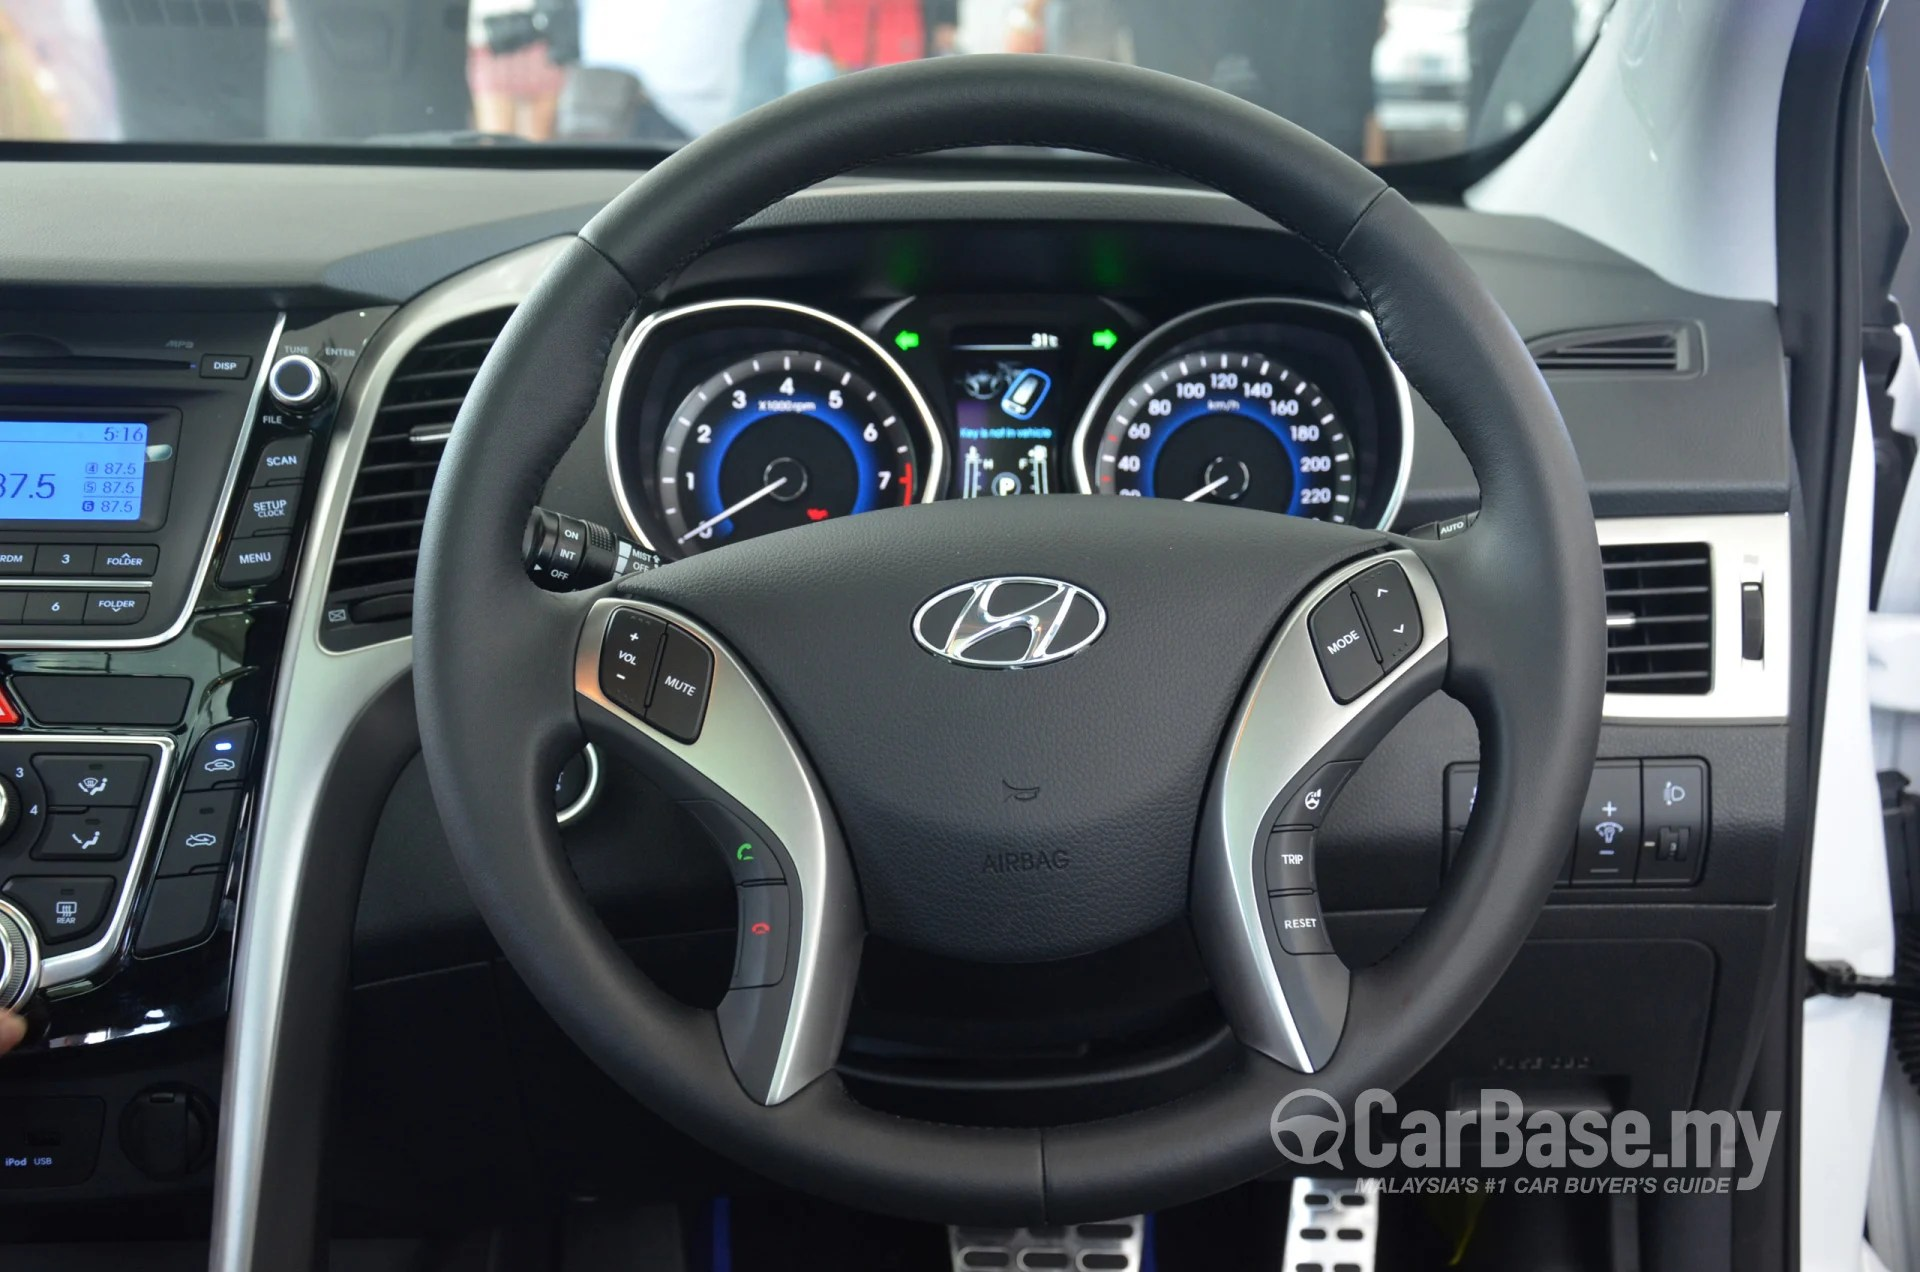 Hyundai I30 Wagon Interieur Hyundai I30 Gd 2014 Interior Image In Malaysia Reviews Specs